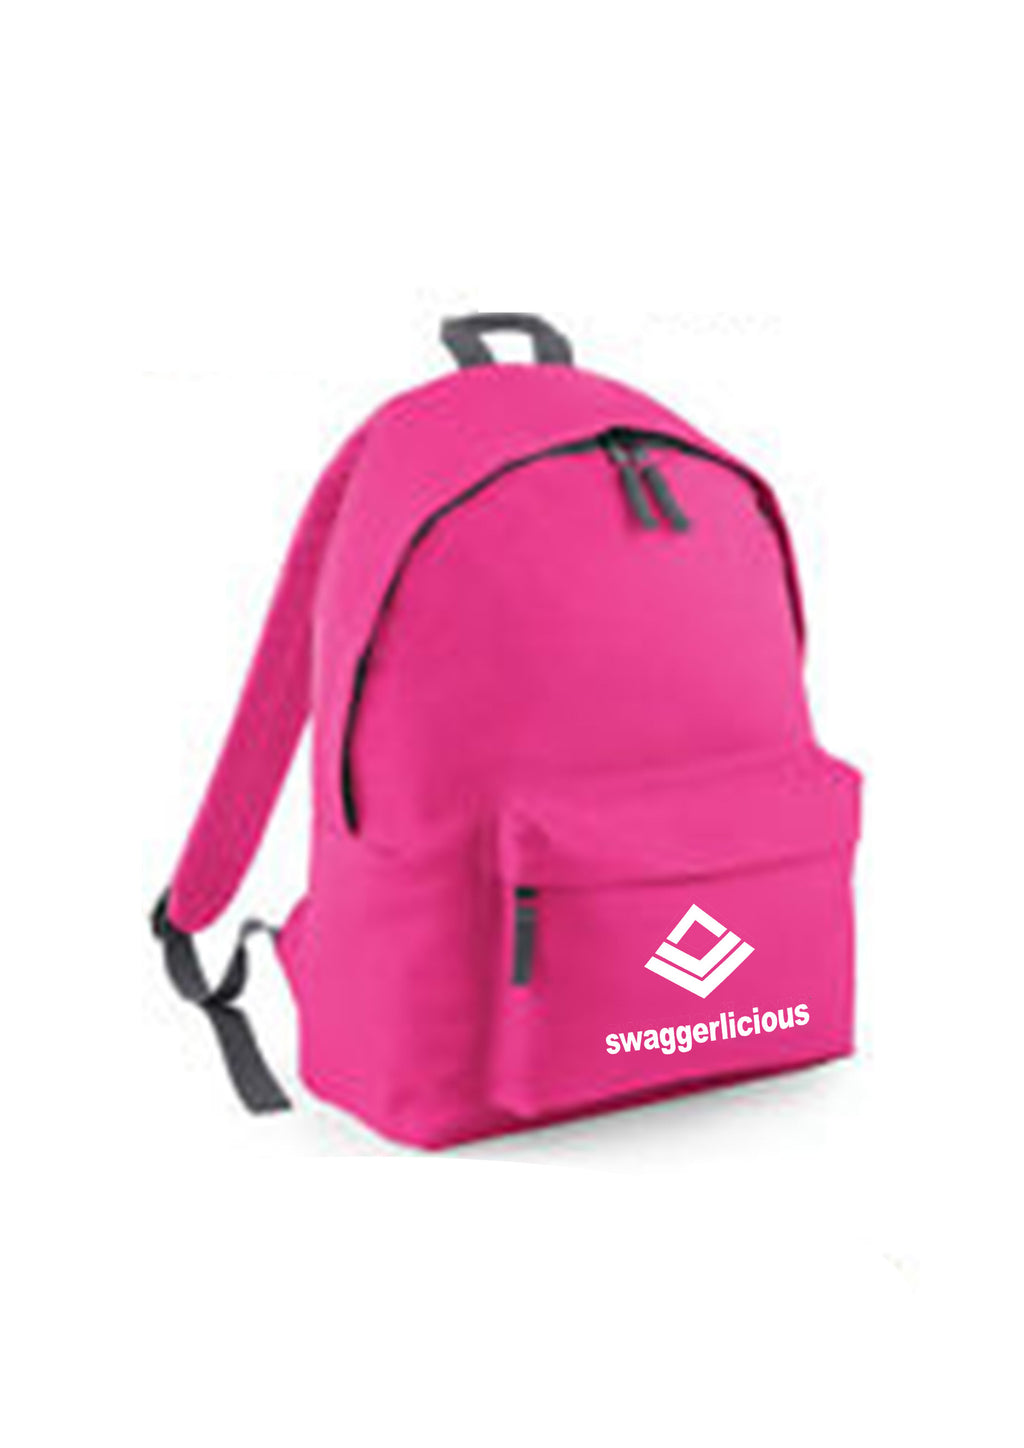 MAGNETE SWAGGERLICIOUS BACKPACK - swaggerlicious-clothing.com